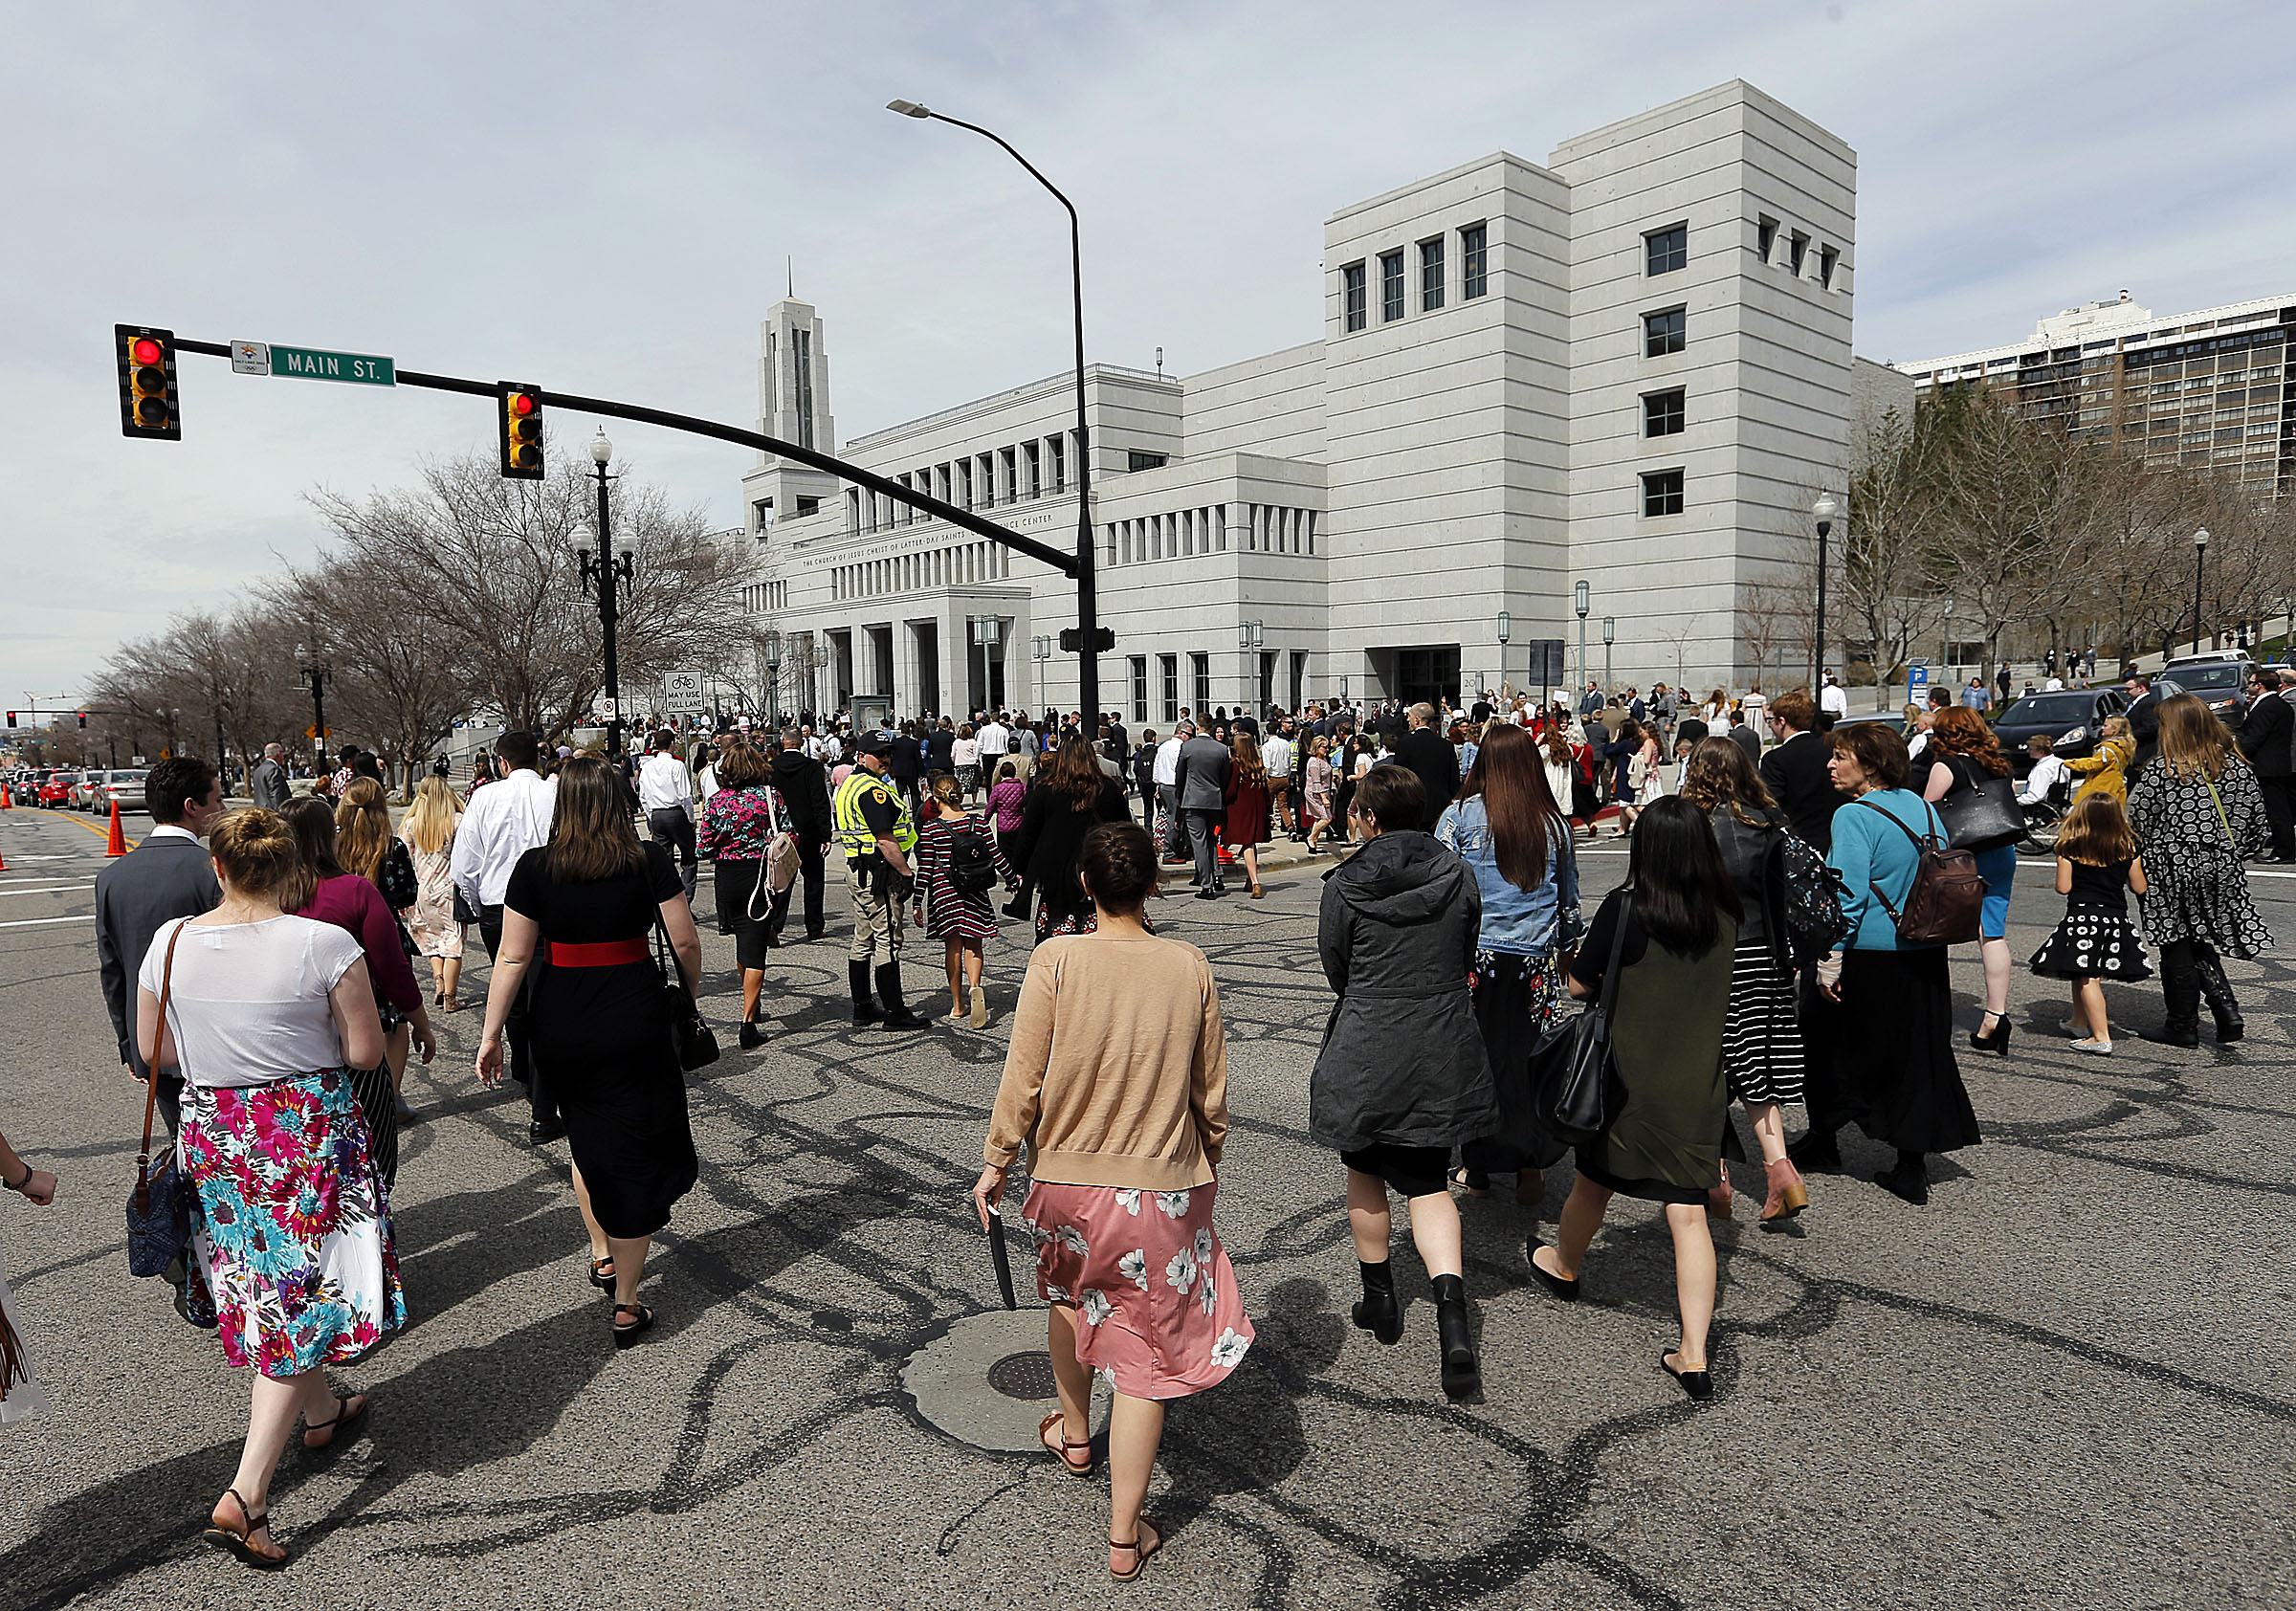 Conferencegoers walk to the Conference Center for the Saturday afternoon session of the LDS Church's 188th Annual General Conference in Salt Lake City on Saturday, March 31, 2018.